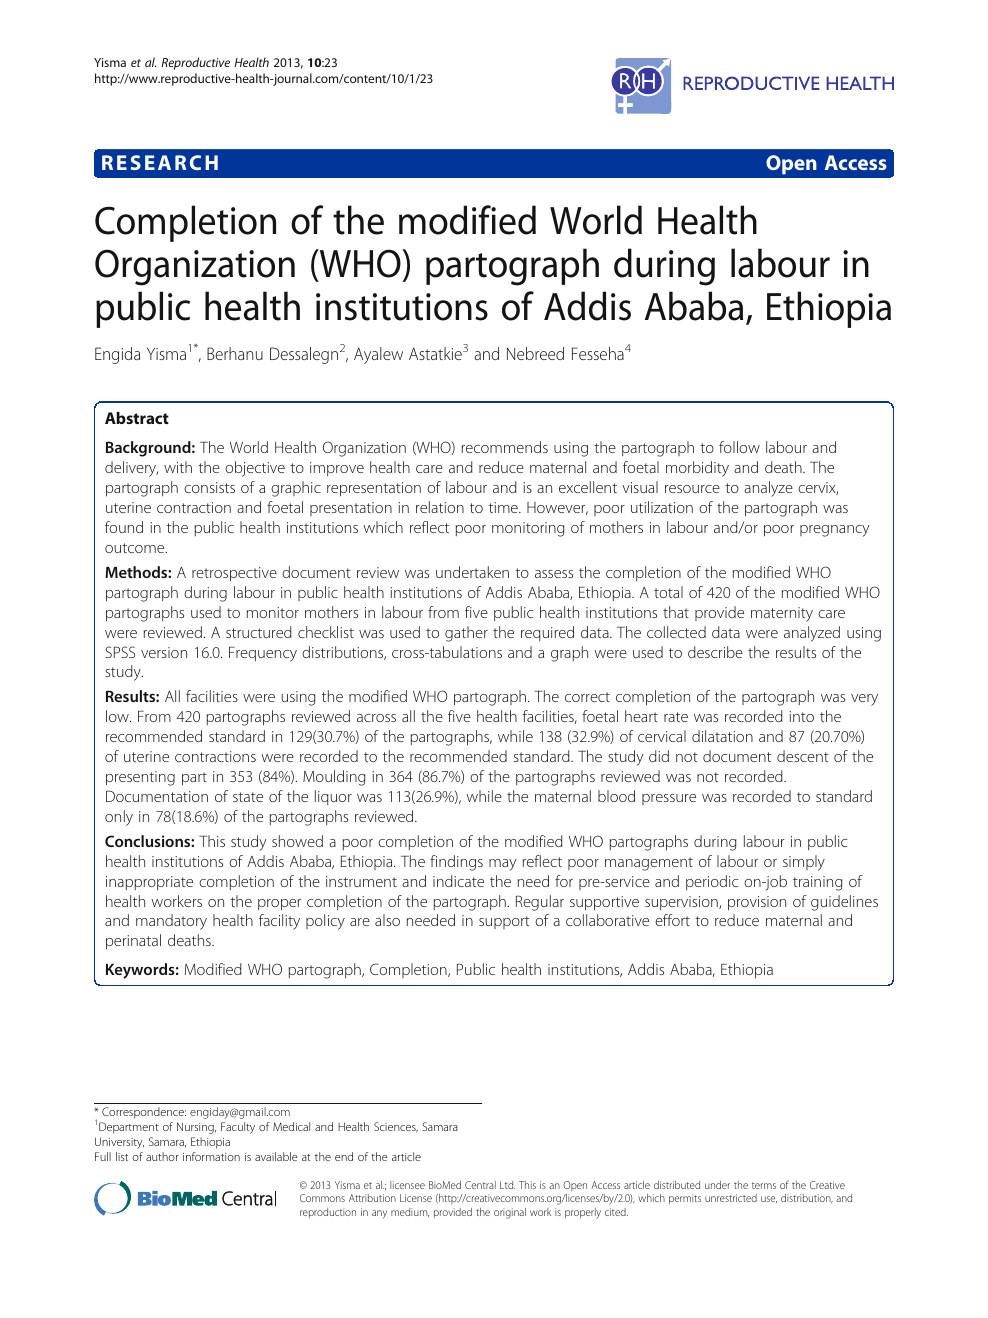 Completion of the modified World Health Organization (WHO